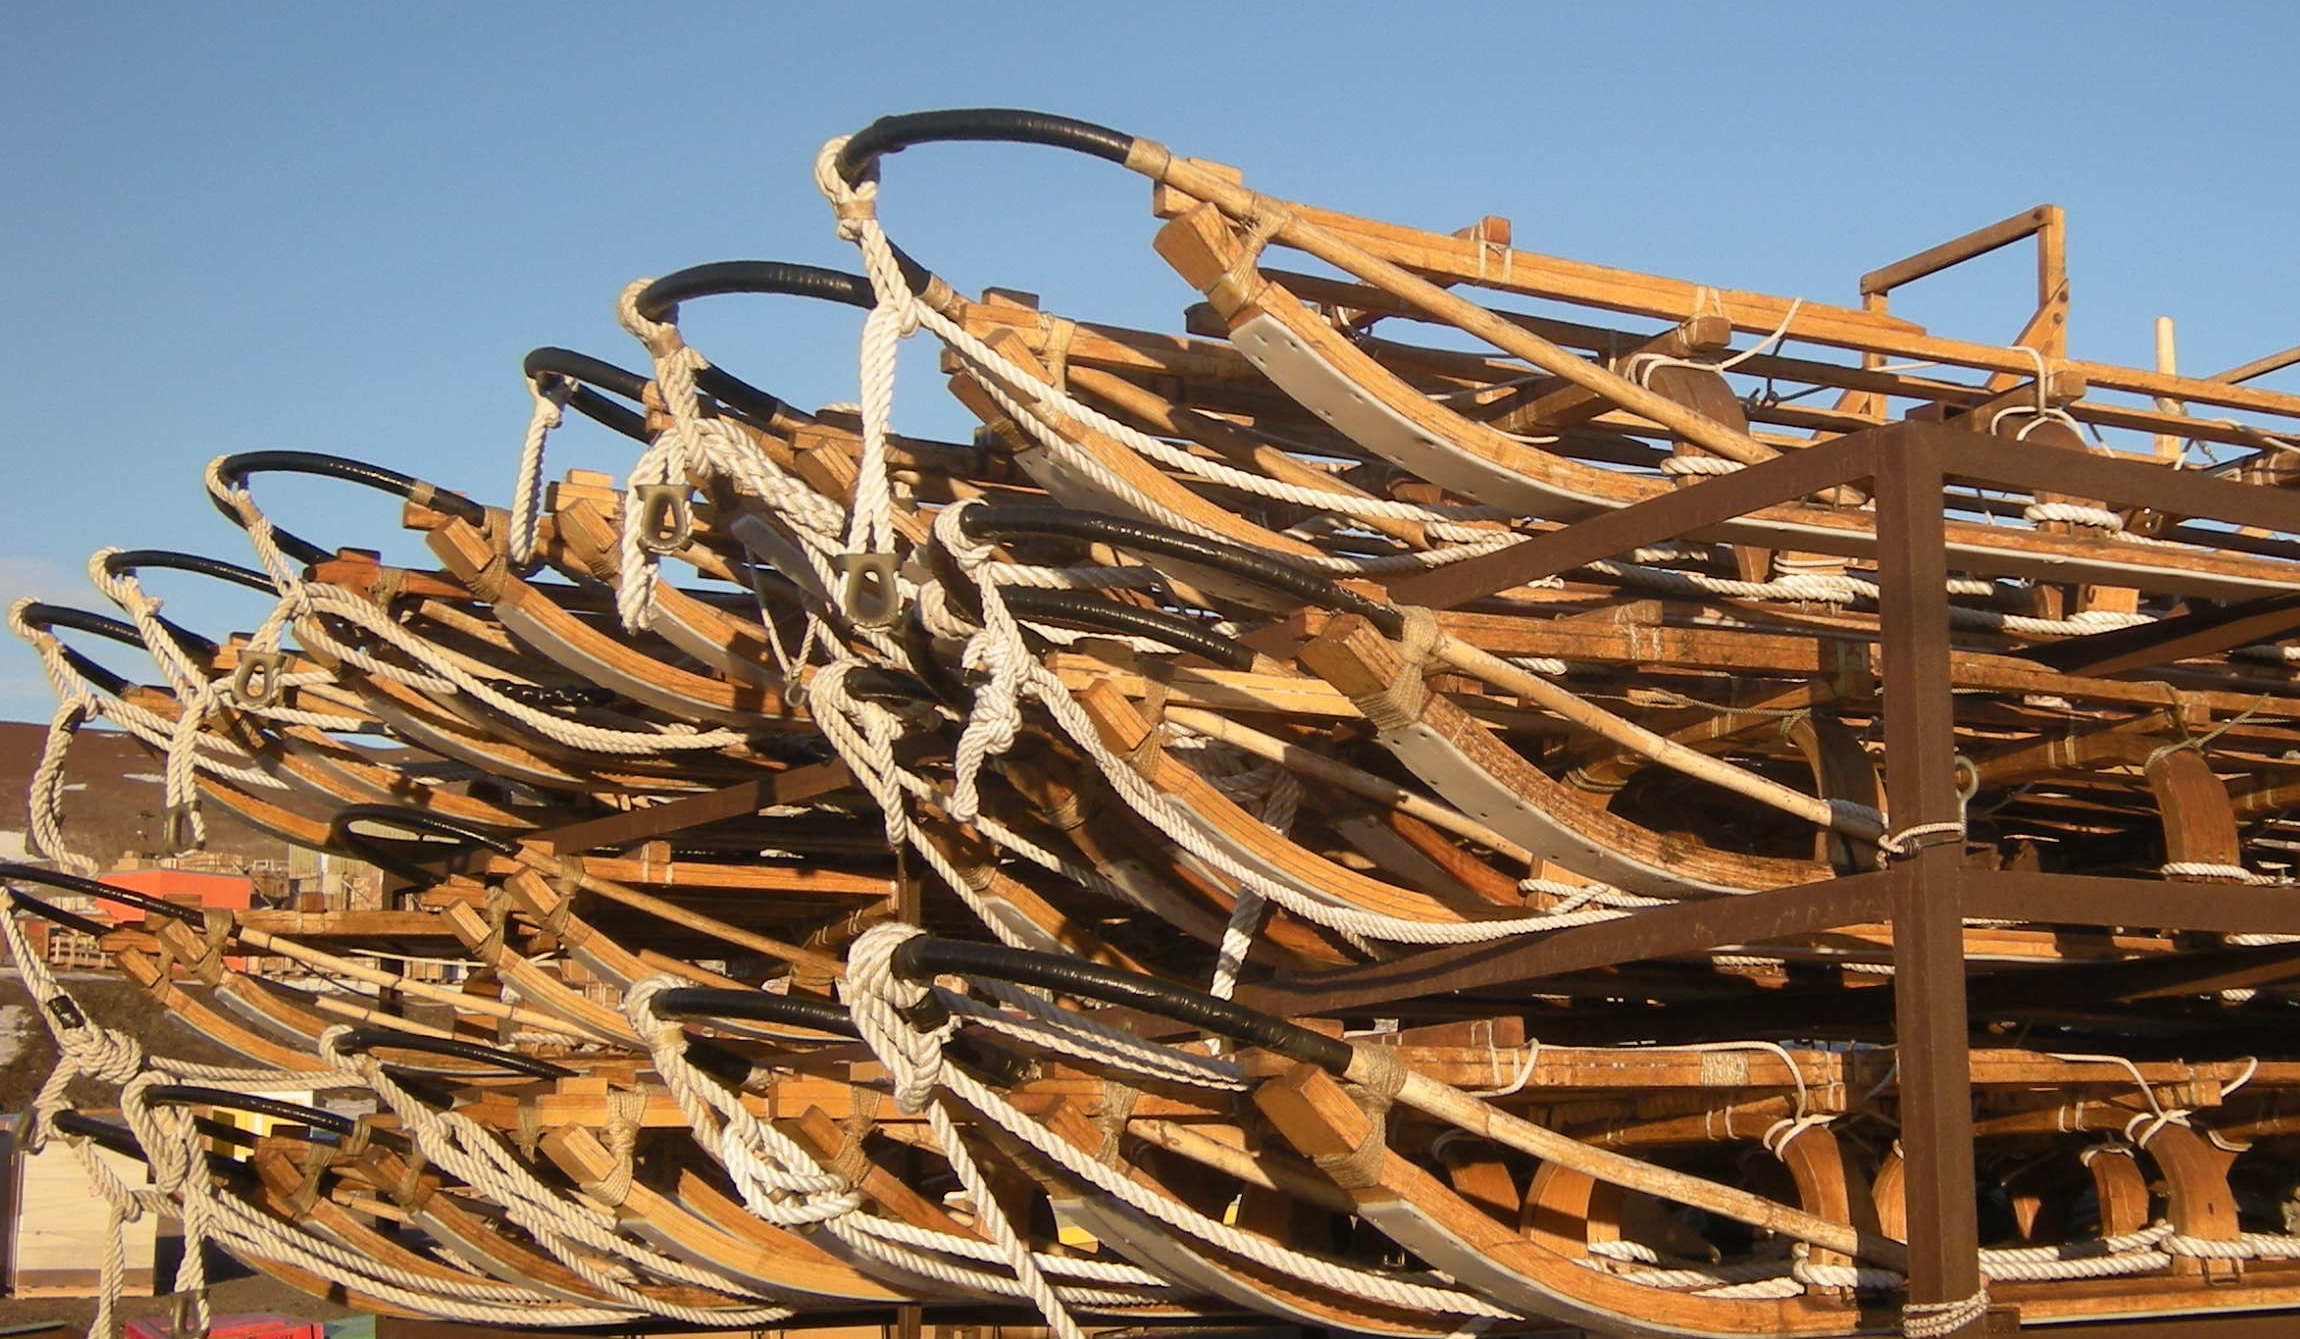 A pile of Nansen sleds next to the Berg Field Center